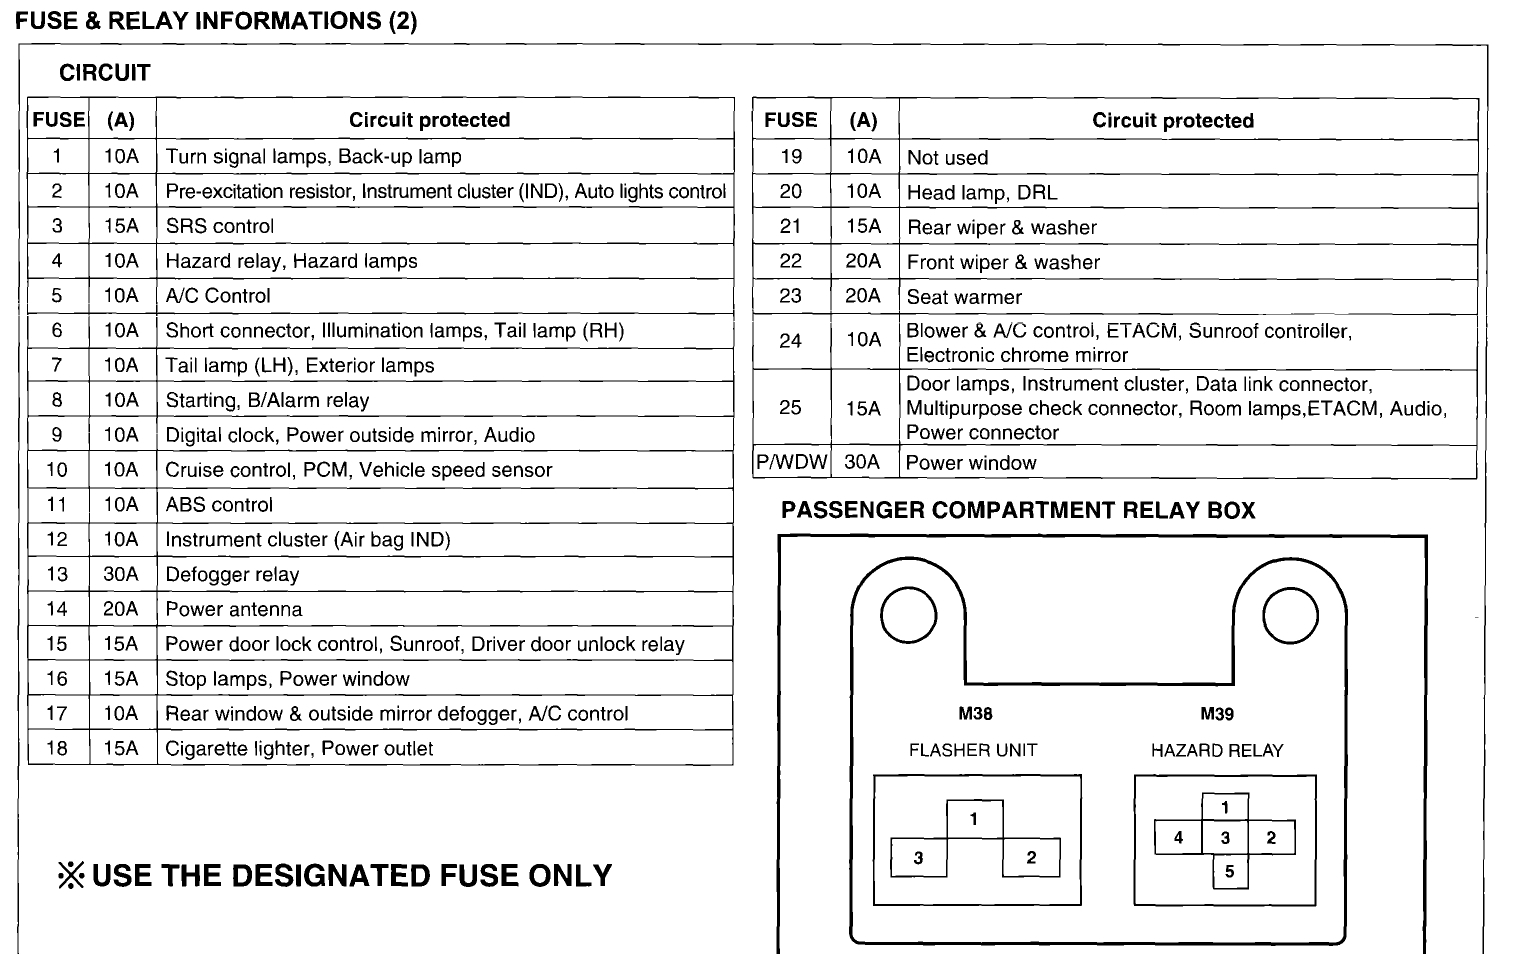 original 2005 ford super duty wiring diagram wiring diagrams 2005 ford f250 wiring diagram at pacquiaovsvargaslive.co